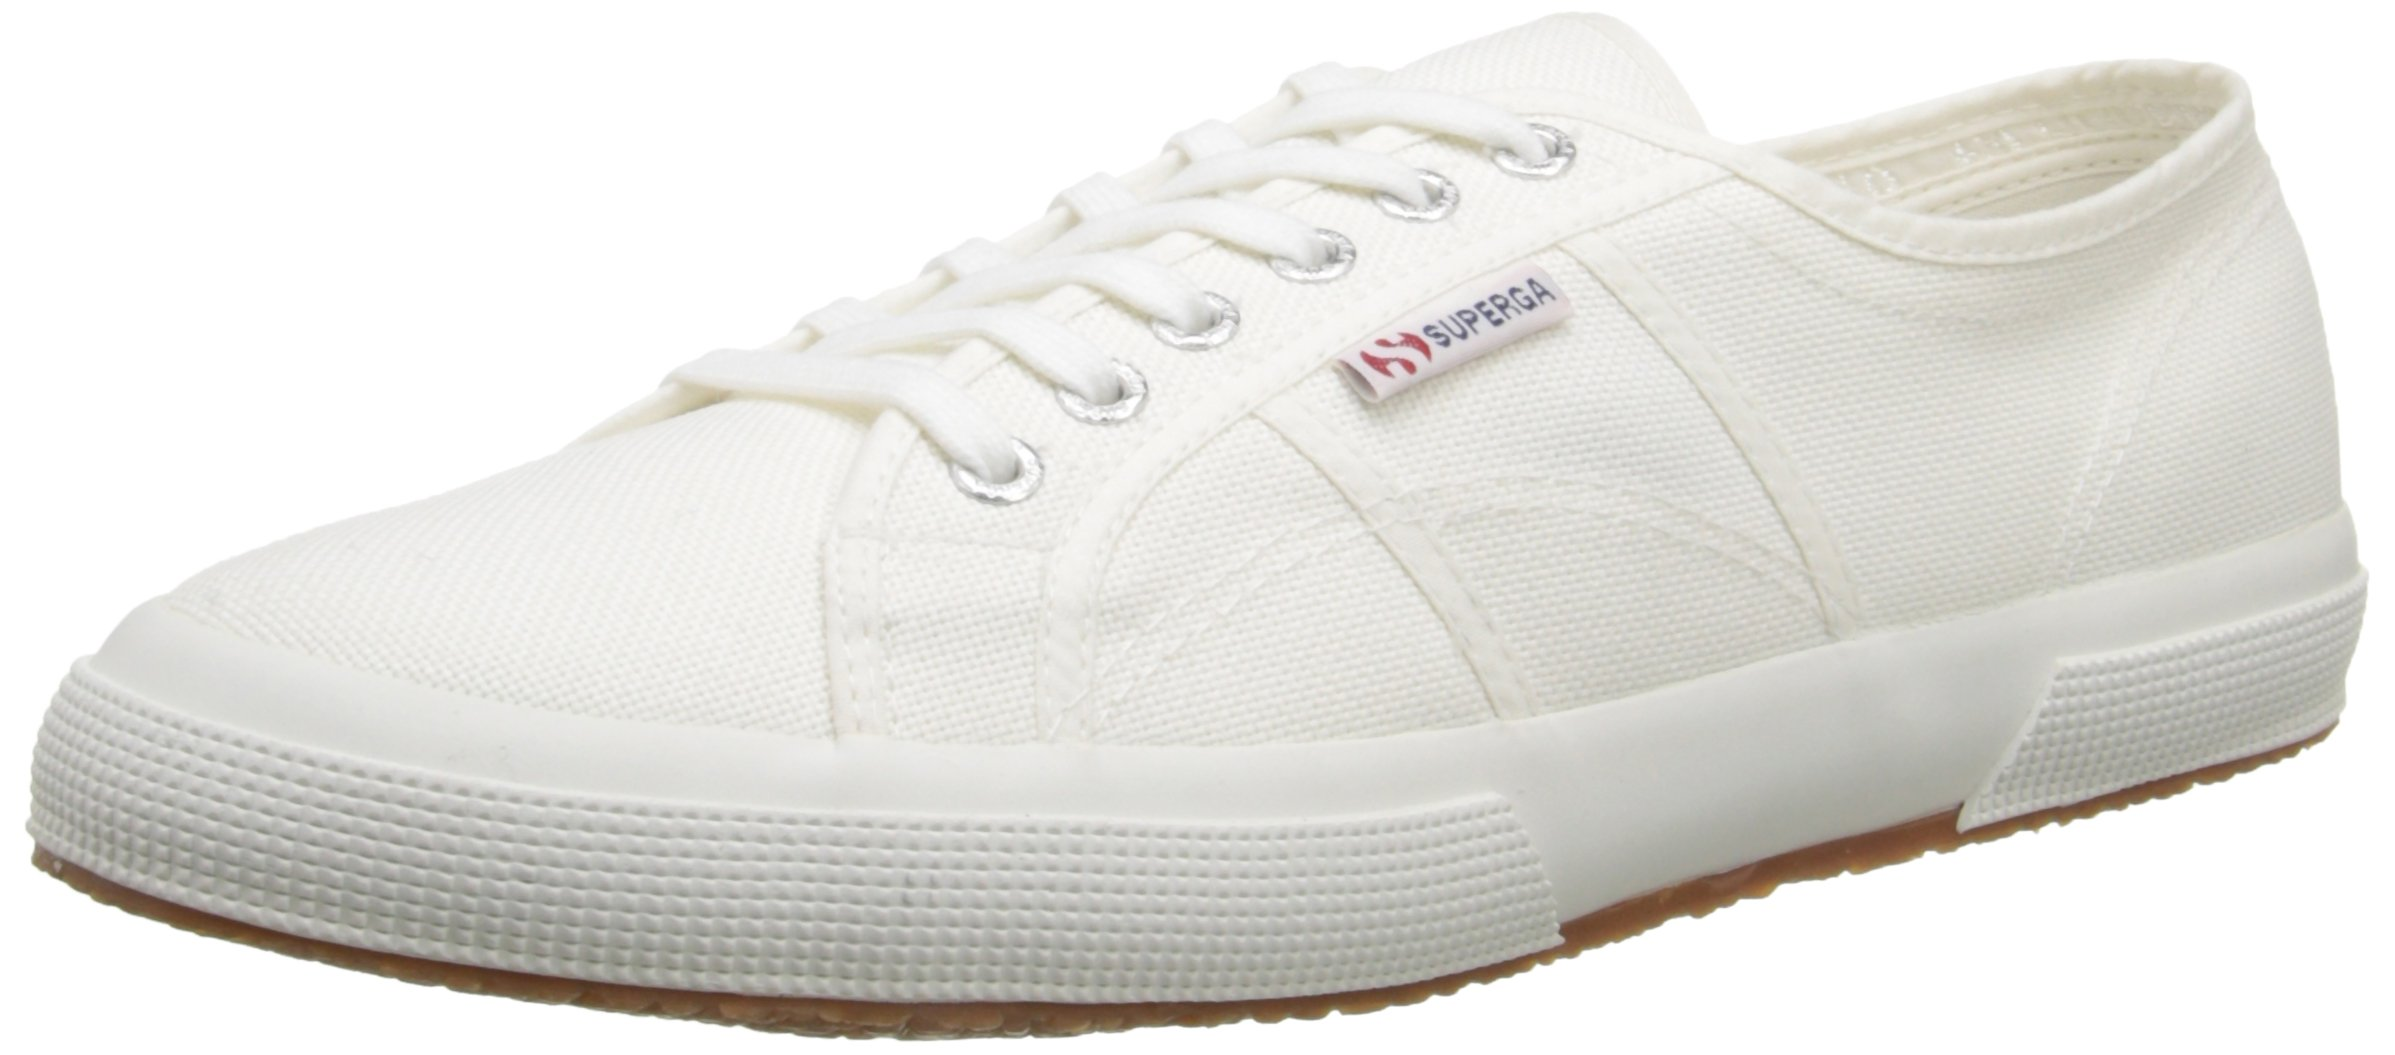 Superga Unisex 2750 Cotu  White Classic Sneaker - 38 M EU / 7.5 B(M) US Women / 6 D(M) US Men by Superga